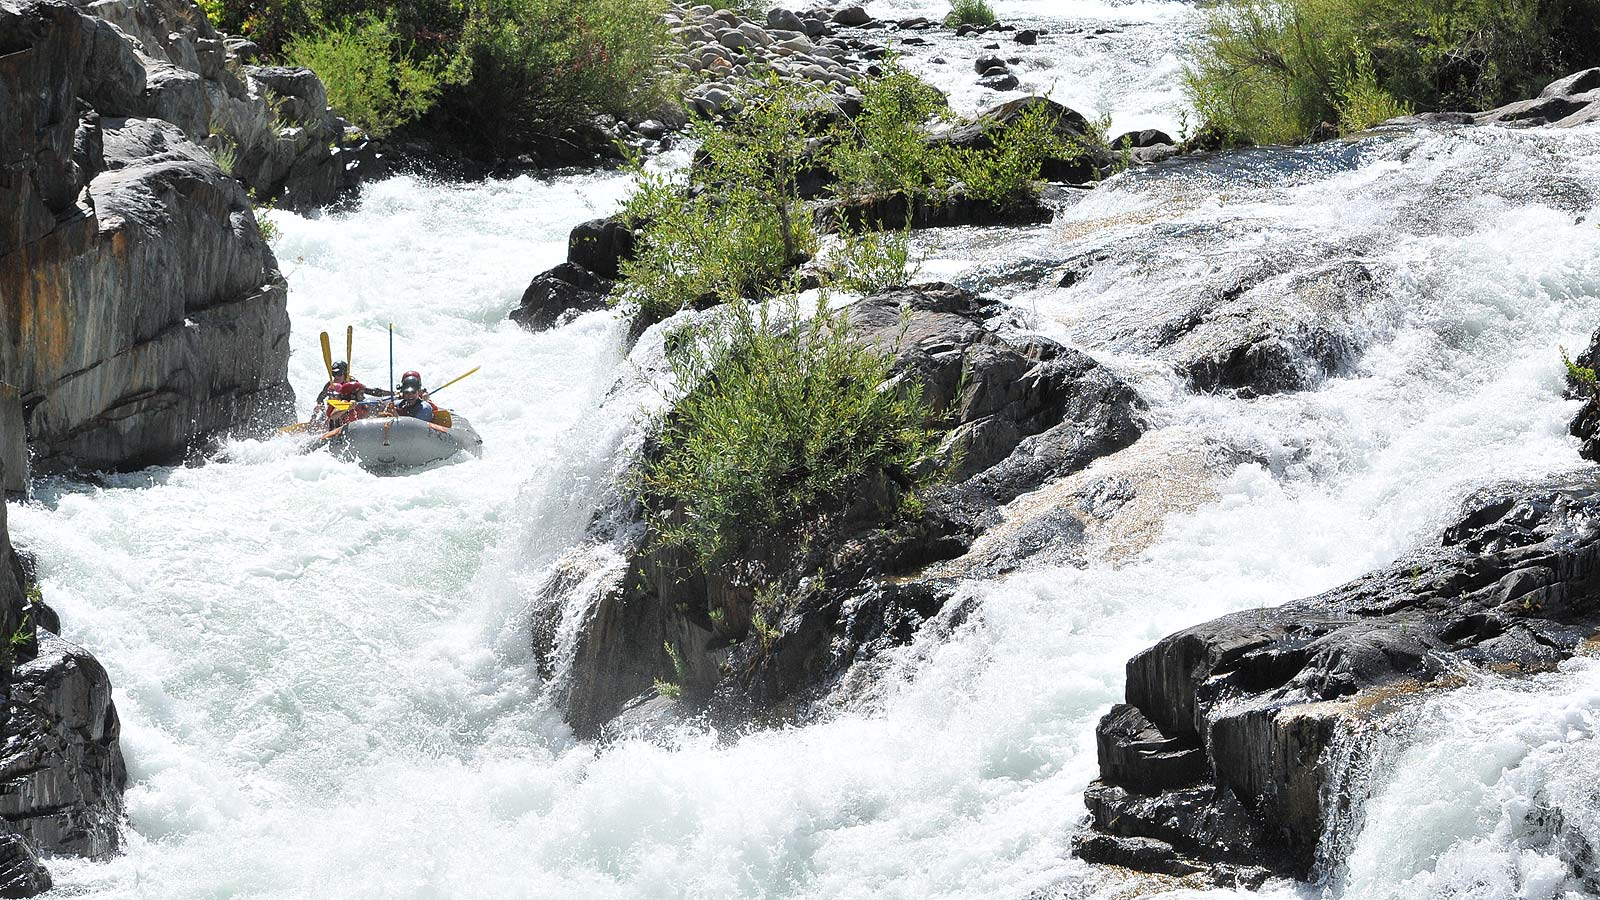 A paddle raft in the middle of Tunnel Chute rapid on the Middle Fork of the American River with ARTA River Trips